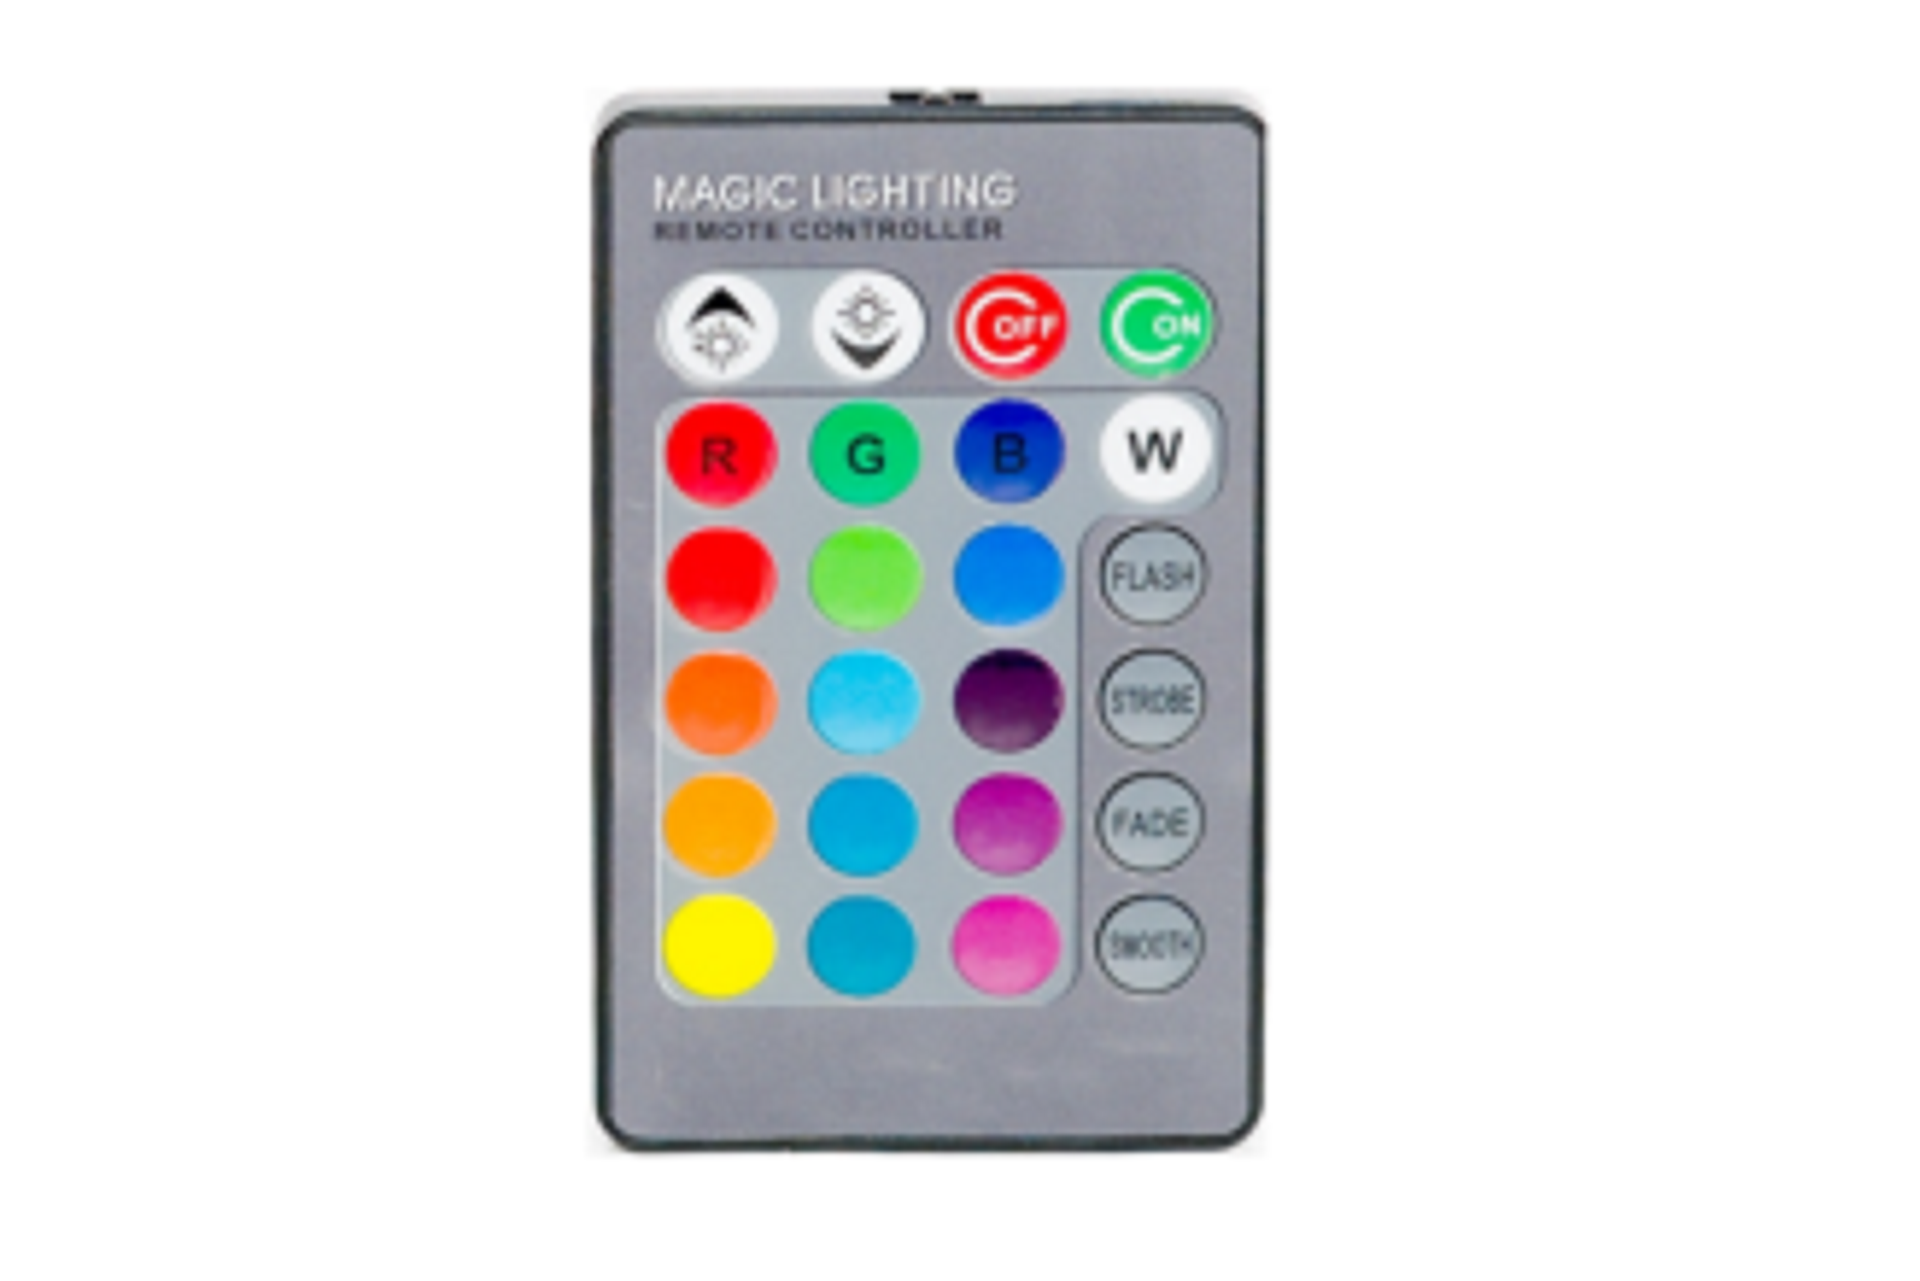 Zen Station Wireless Led Lighting Control Pad Airheads